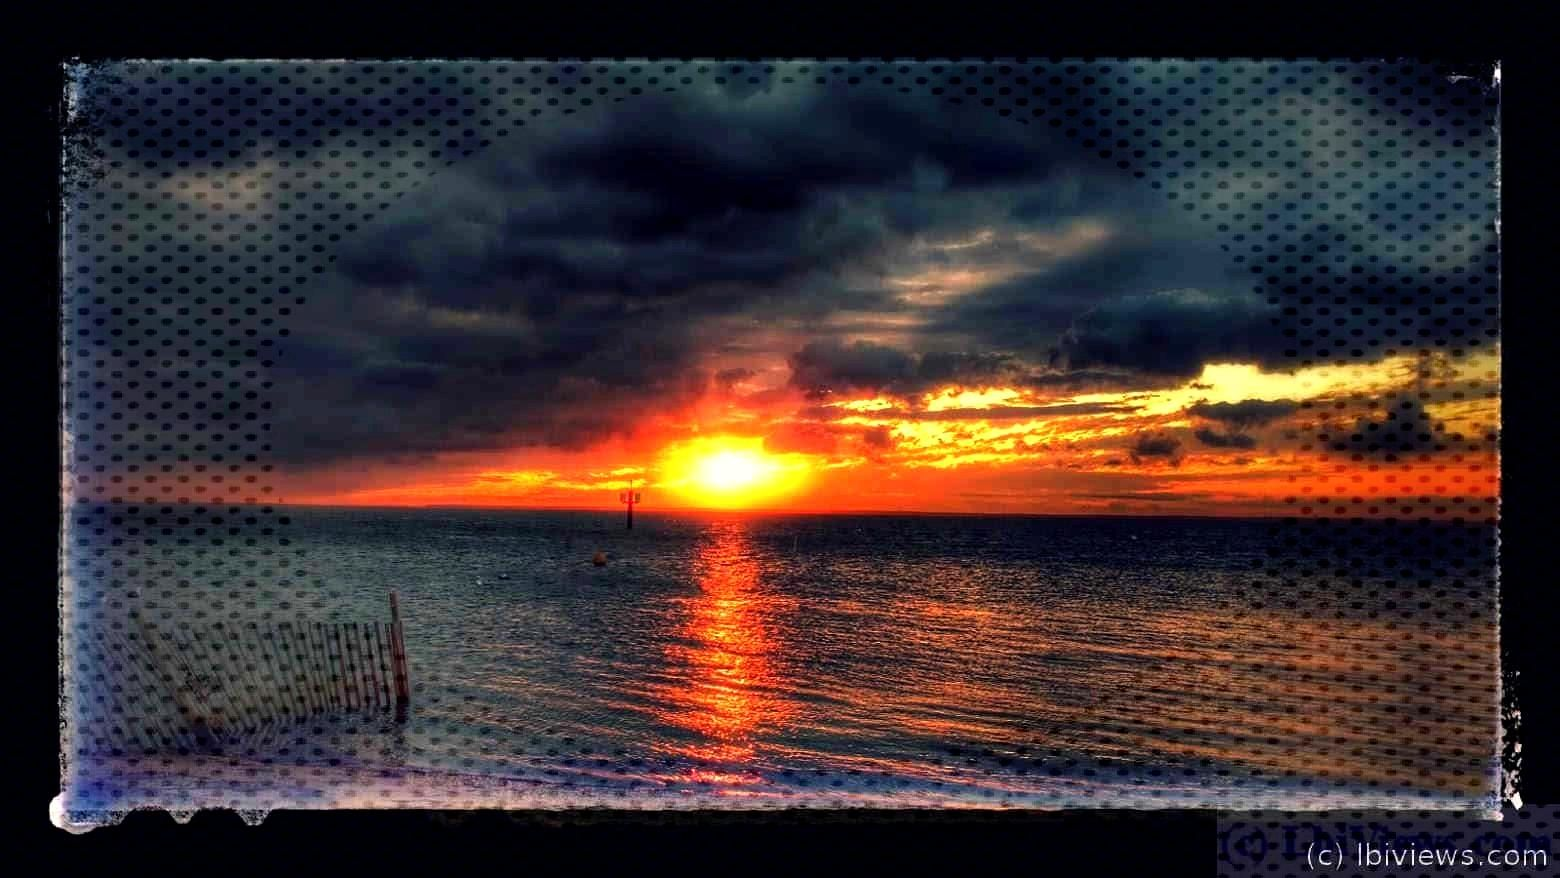 ust a slide show of sunsets.   Sunsets Sept 2016 - LBI Views  .Sunsets from September 2016 Click an